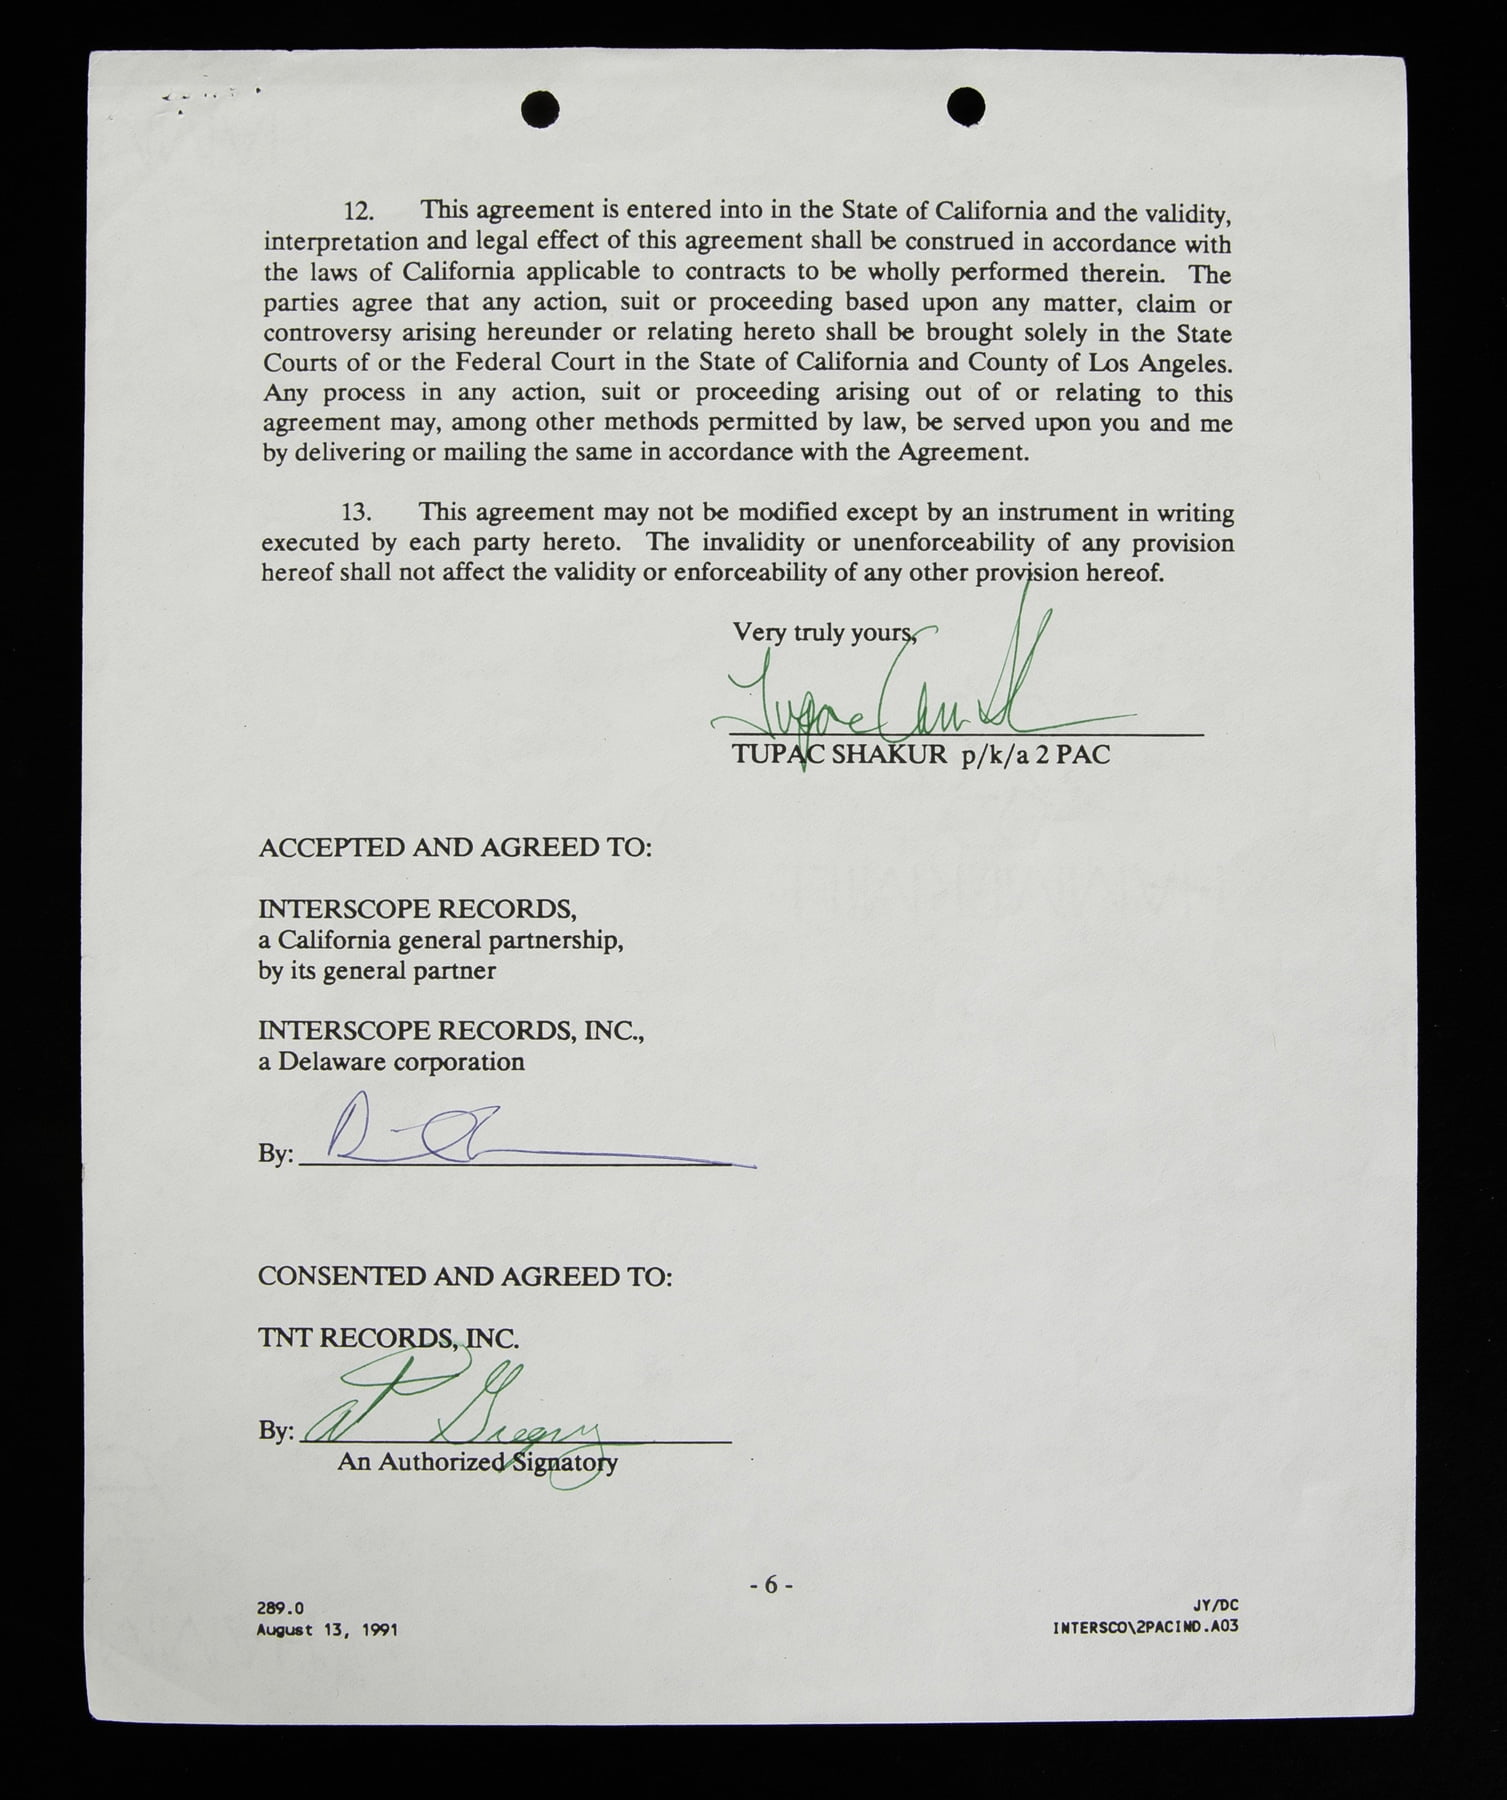 Tupac Contract With Interscope Records 2pac Legacy